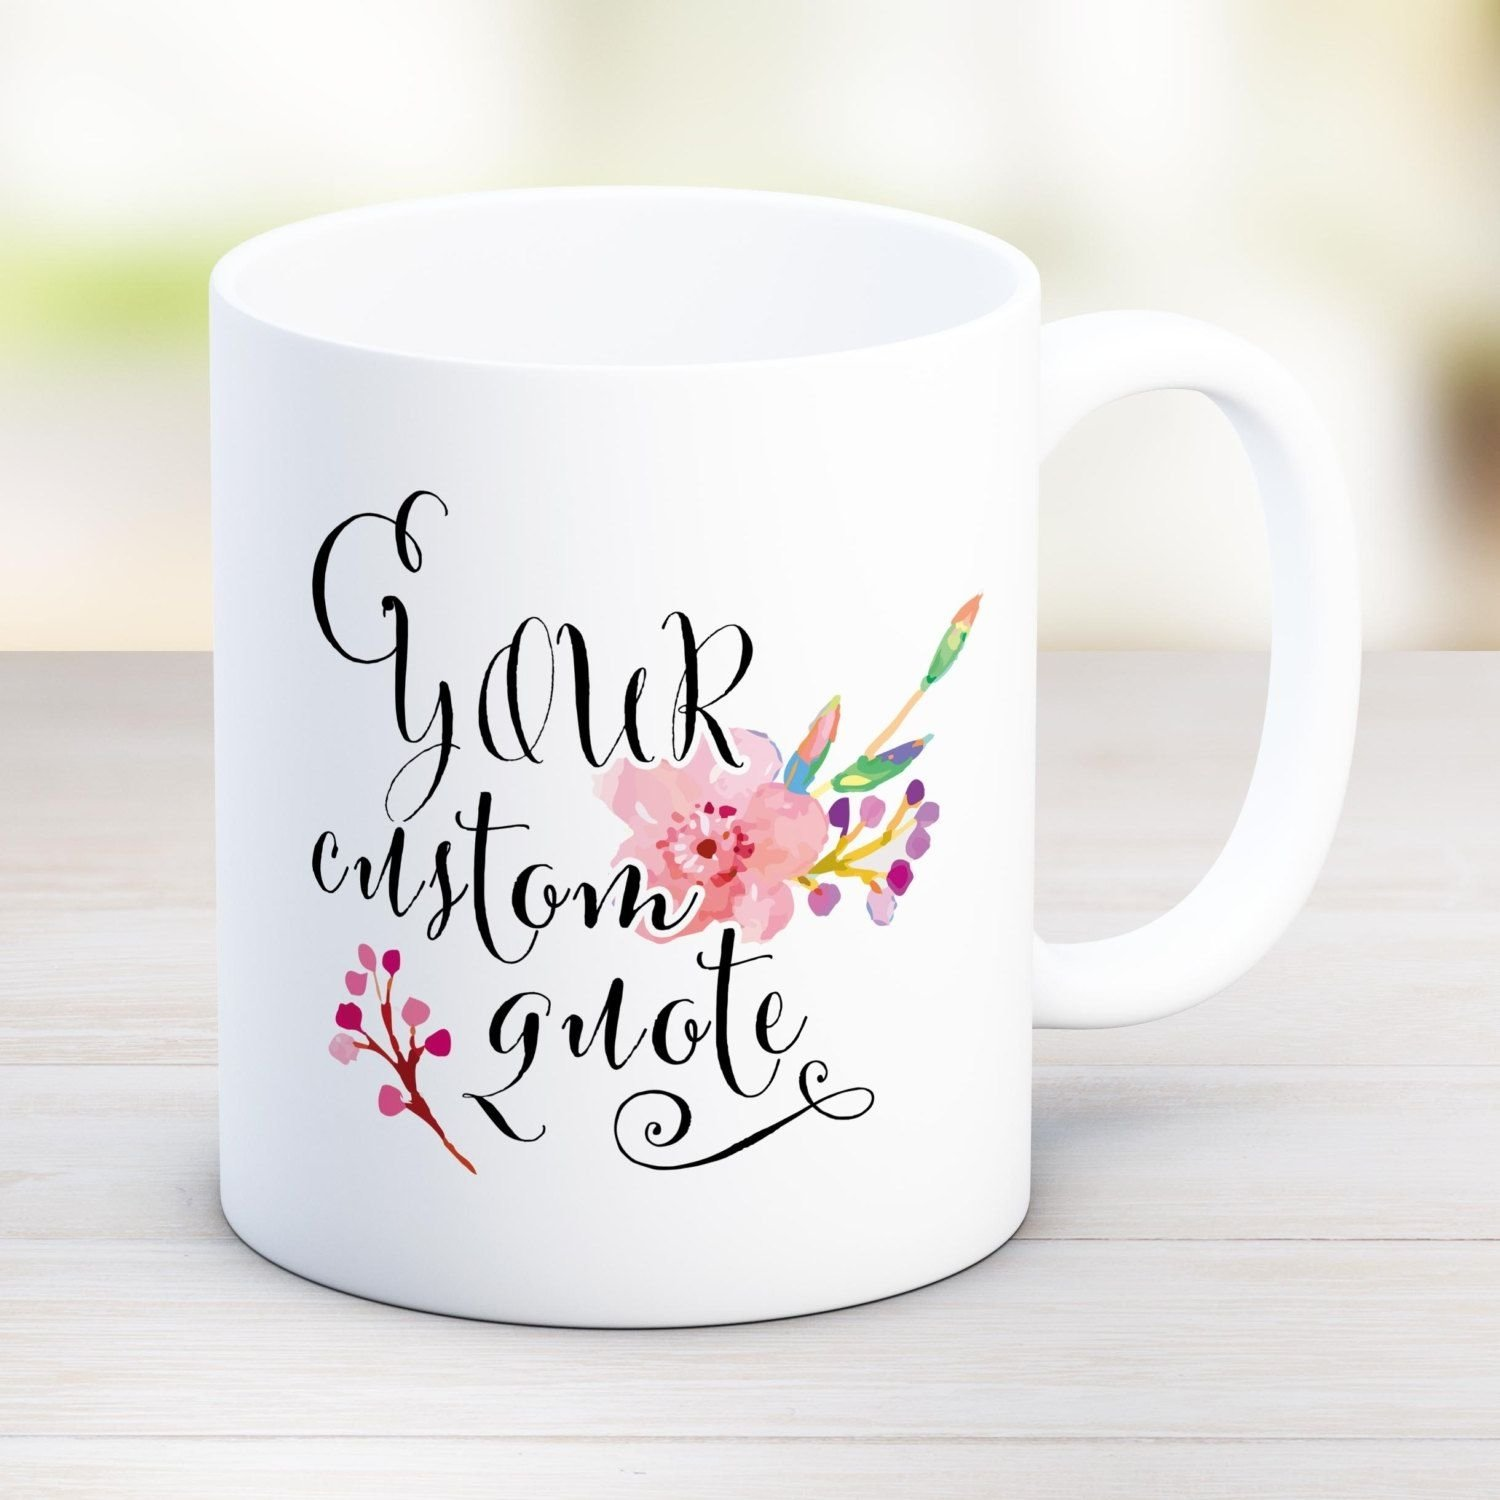 10 Attractive Mother In Law Mothers Day Gift Ideas mother of the groom gift mom mug mom wedding personalized mom